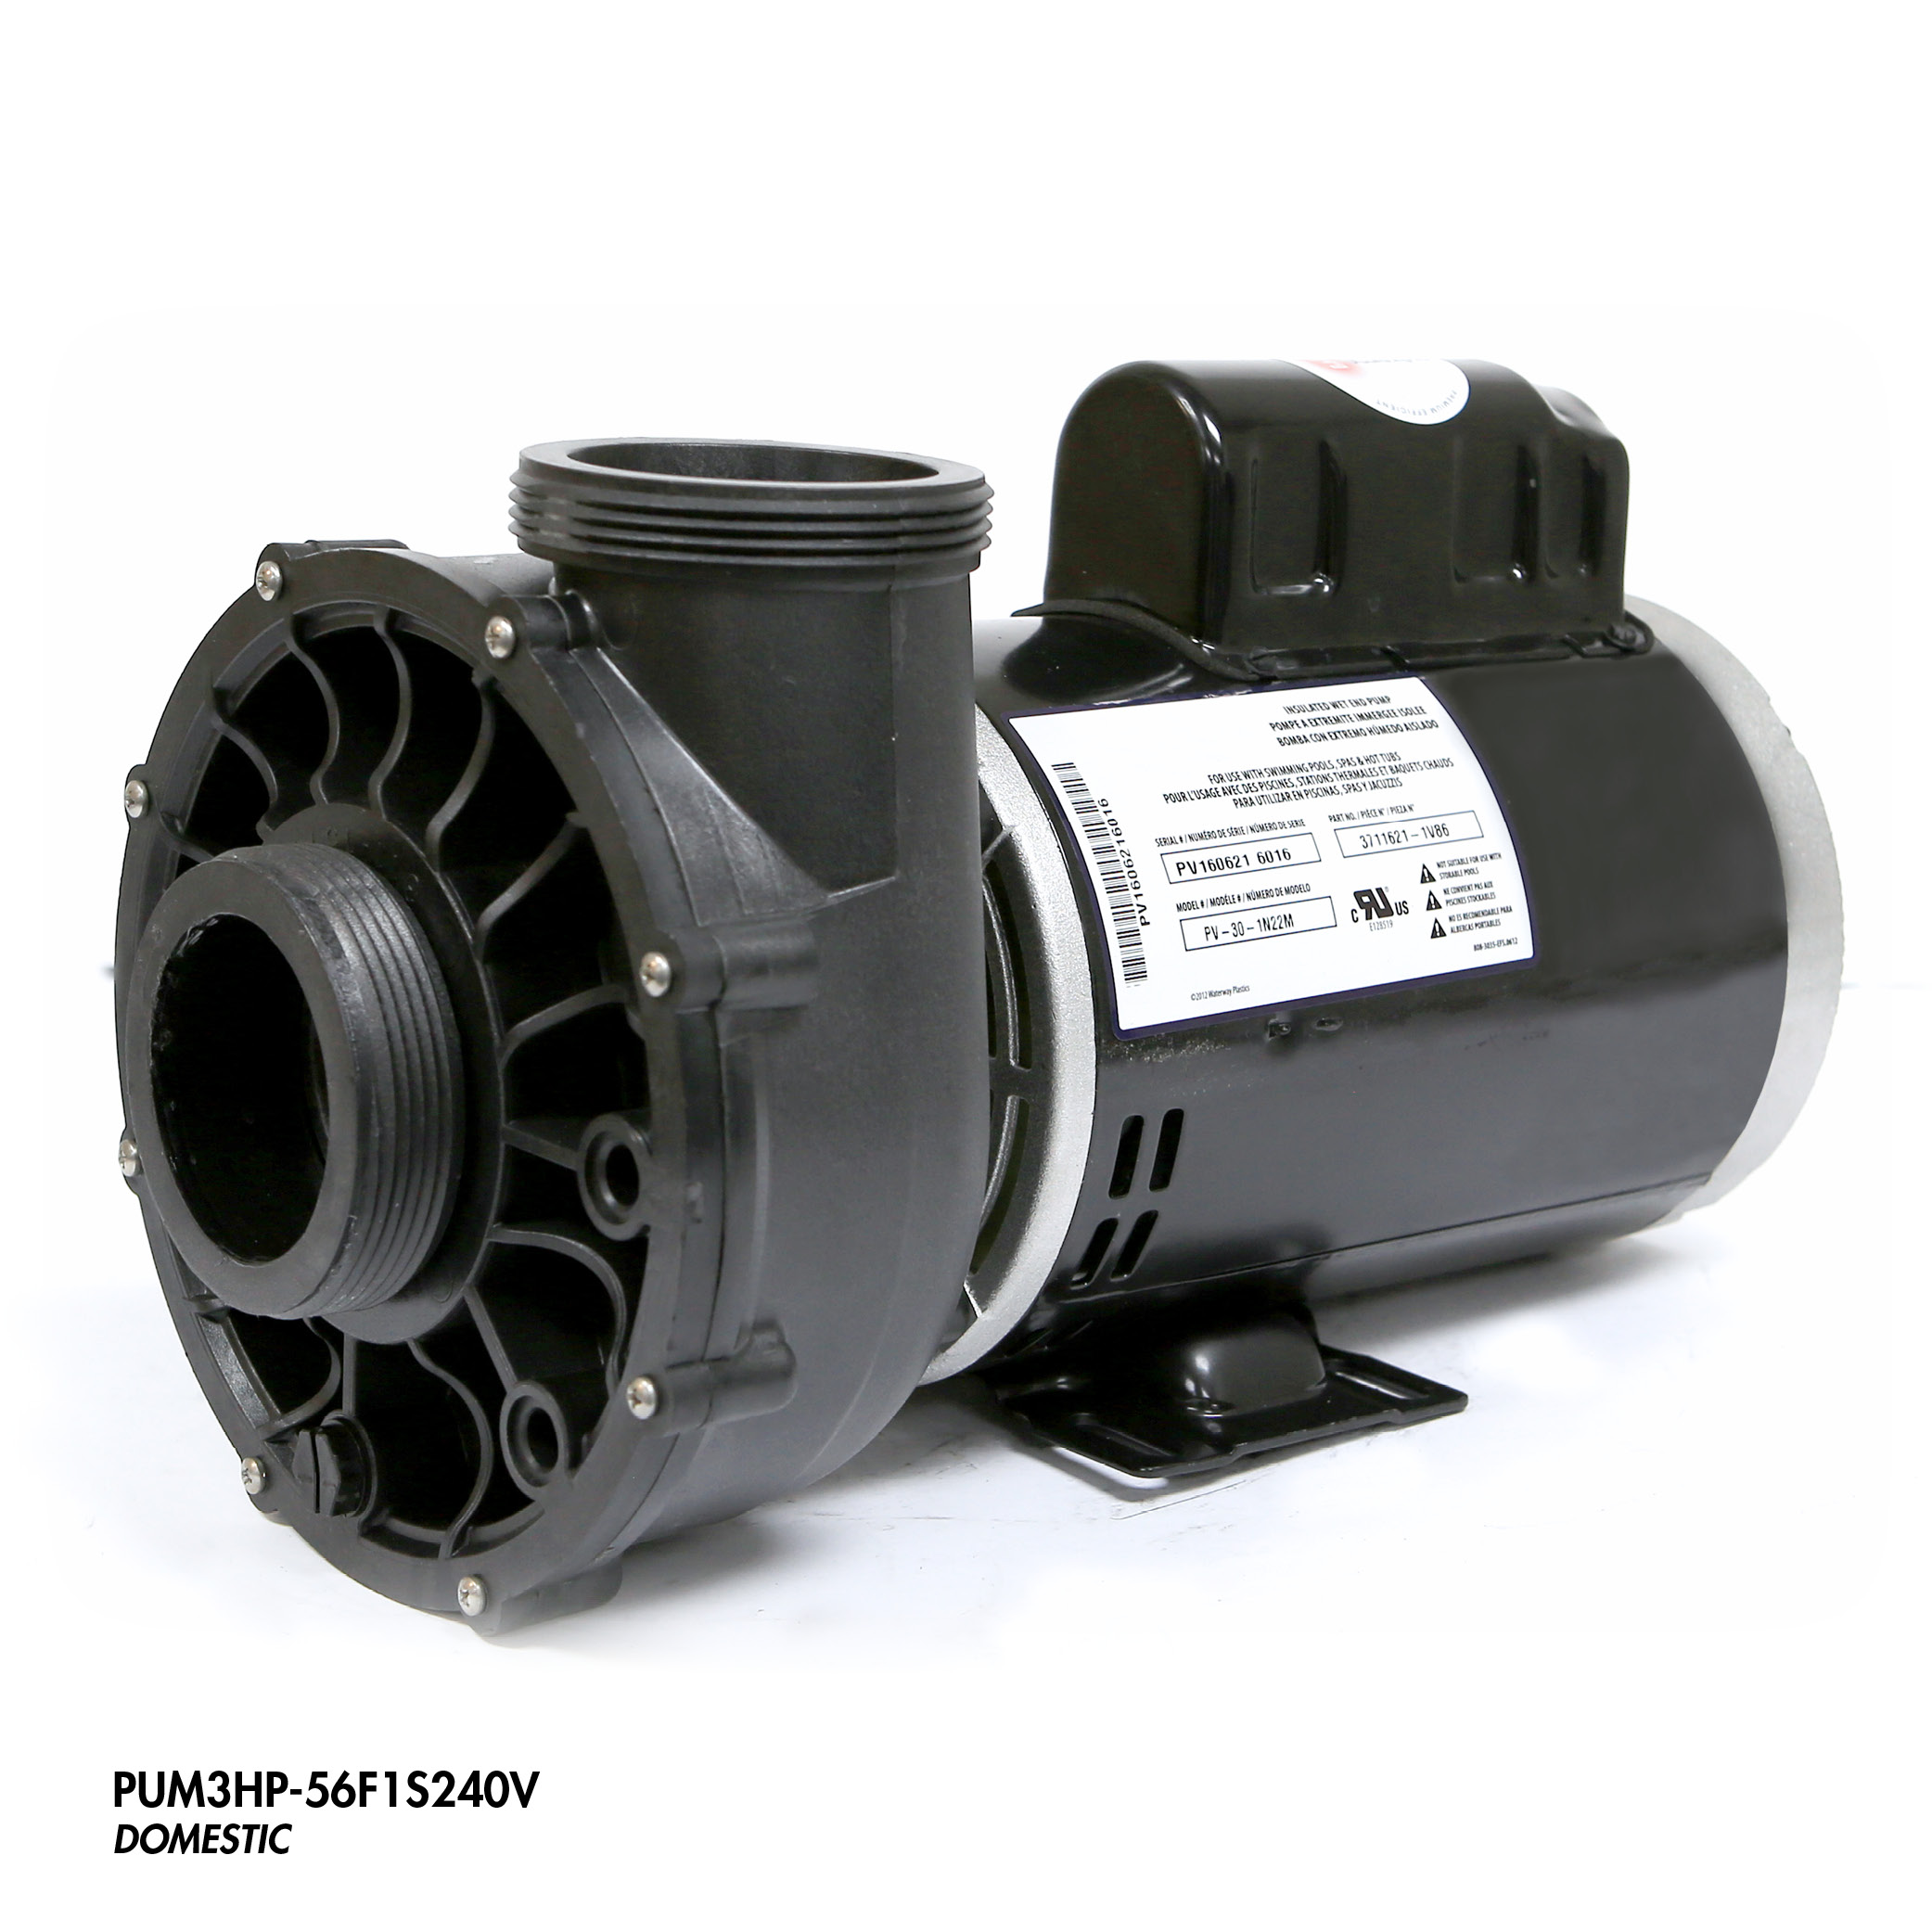 PUM3HP 56F1S240V wiring a two speed spa pump and installation 49 youtube magnetek,Waterway 56 Pump Wiring Diagram